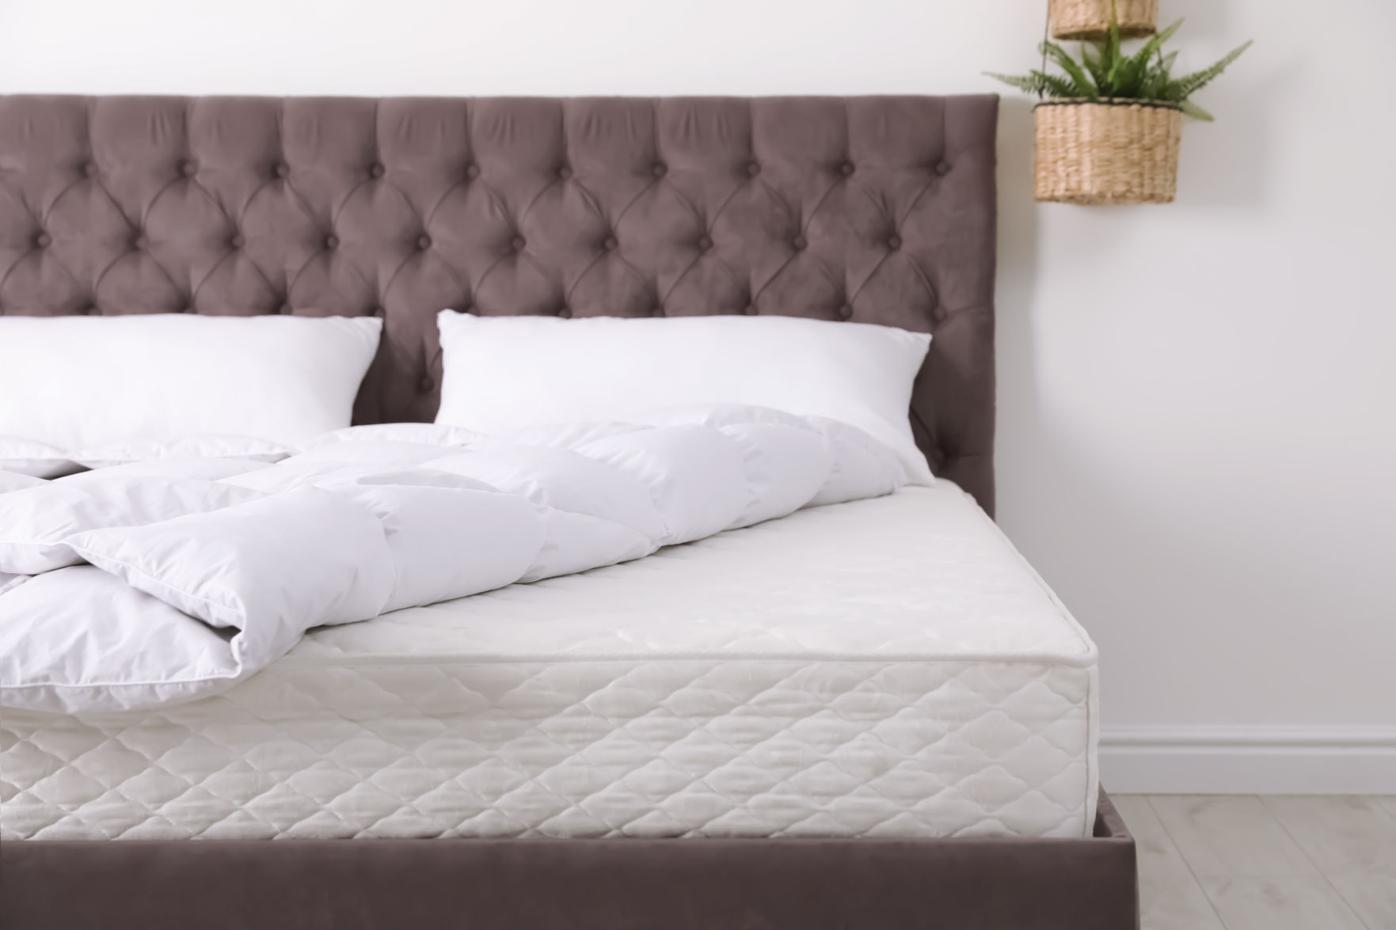 Mattress Buying Tips For New Home Owners